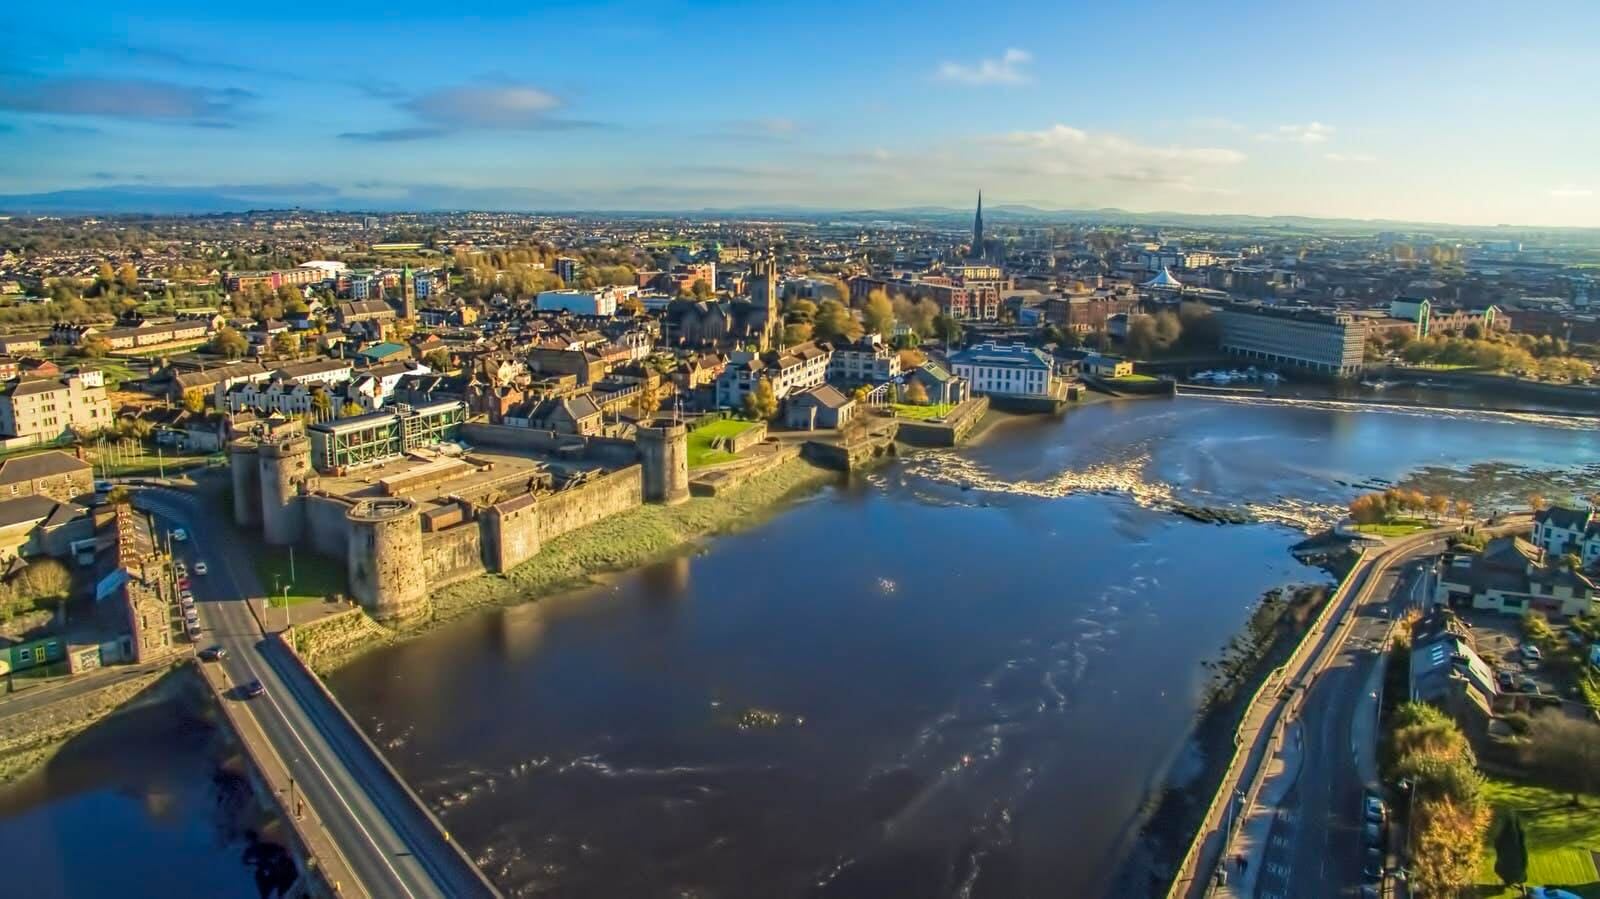 limerick is a sought after destination for those booking holidays